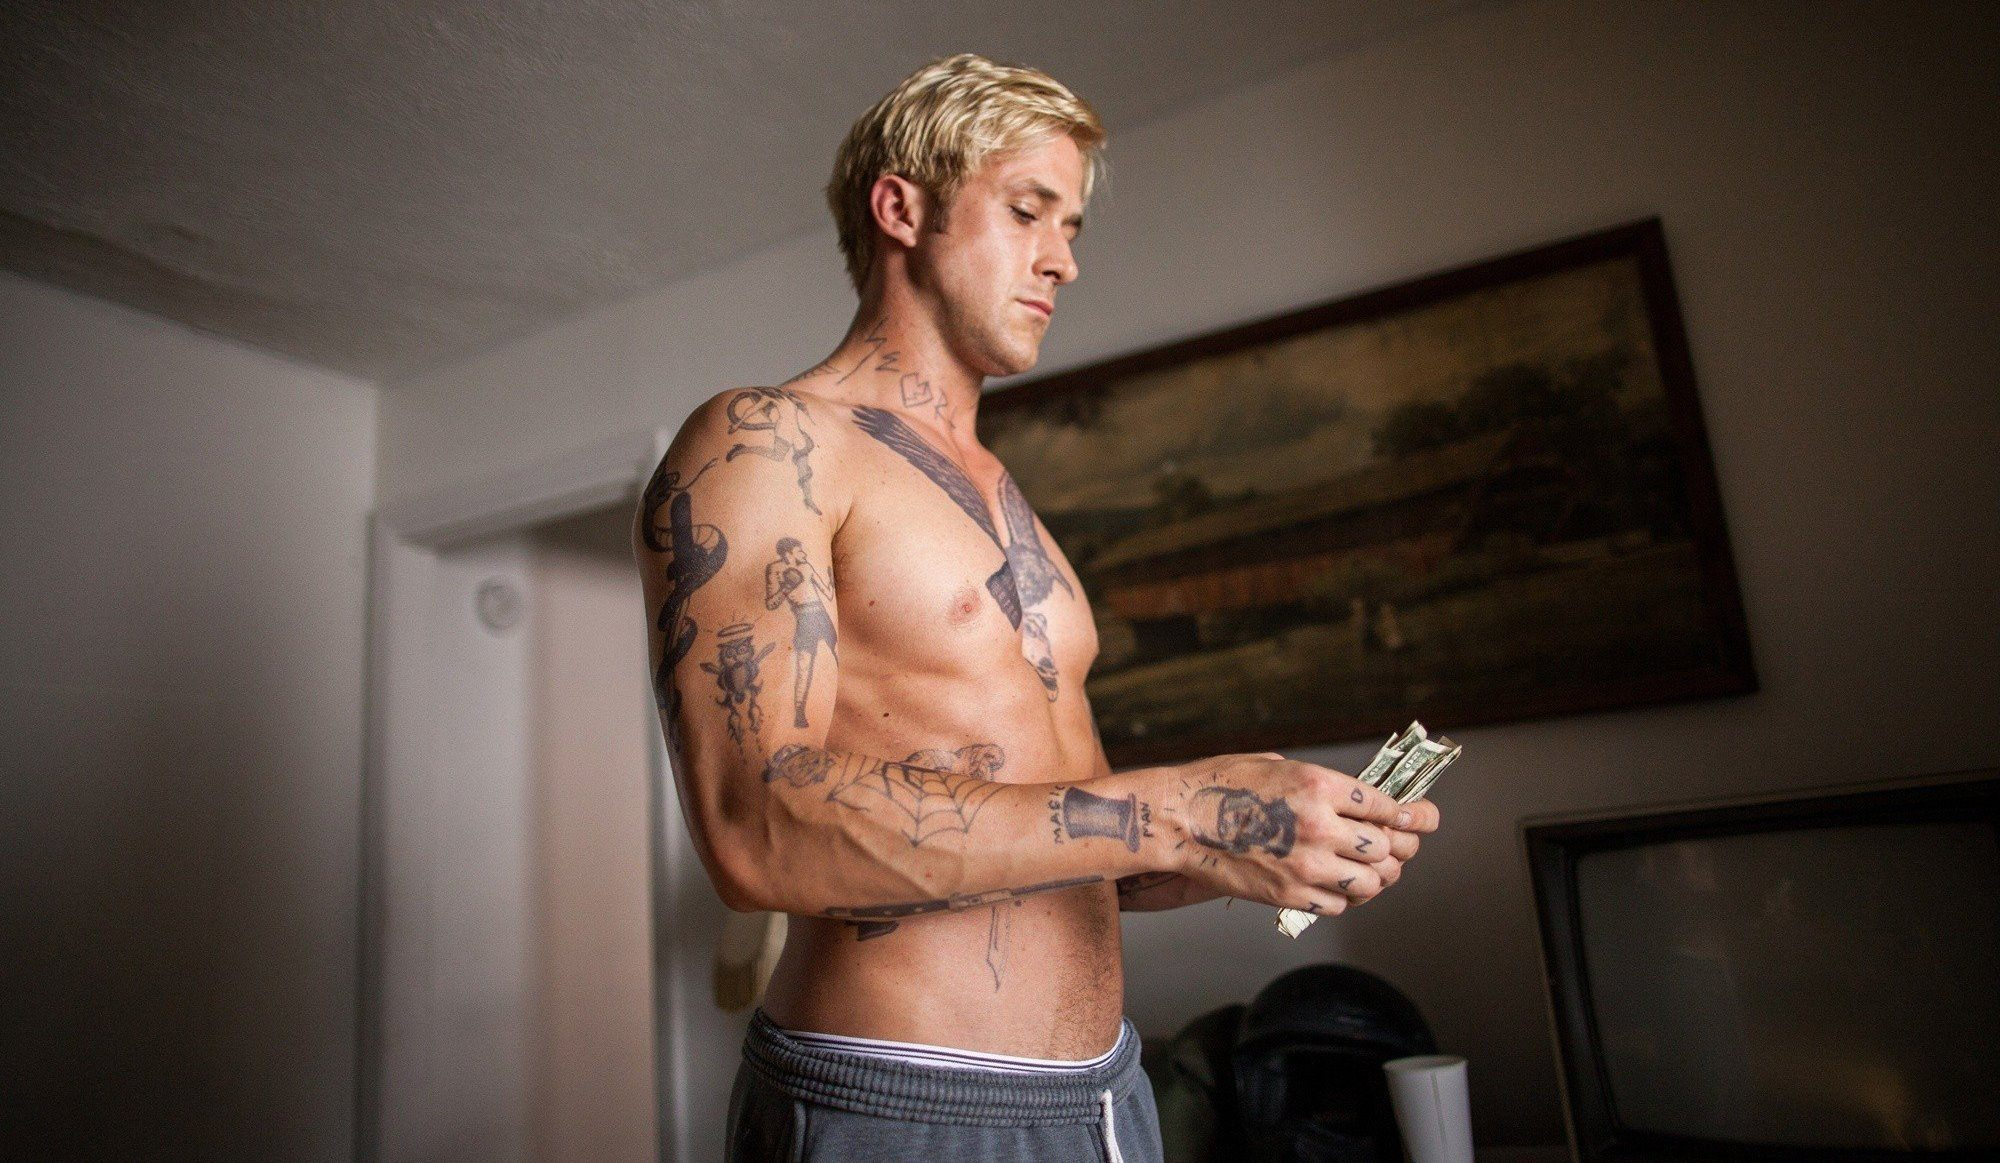 the place beyond the pines gosling is ripped